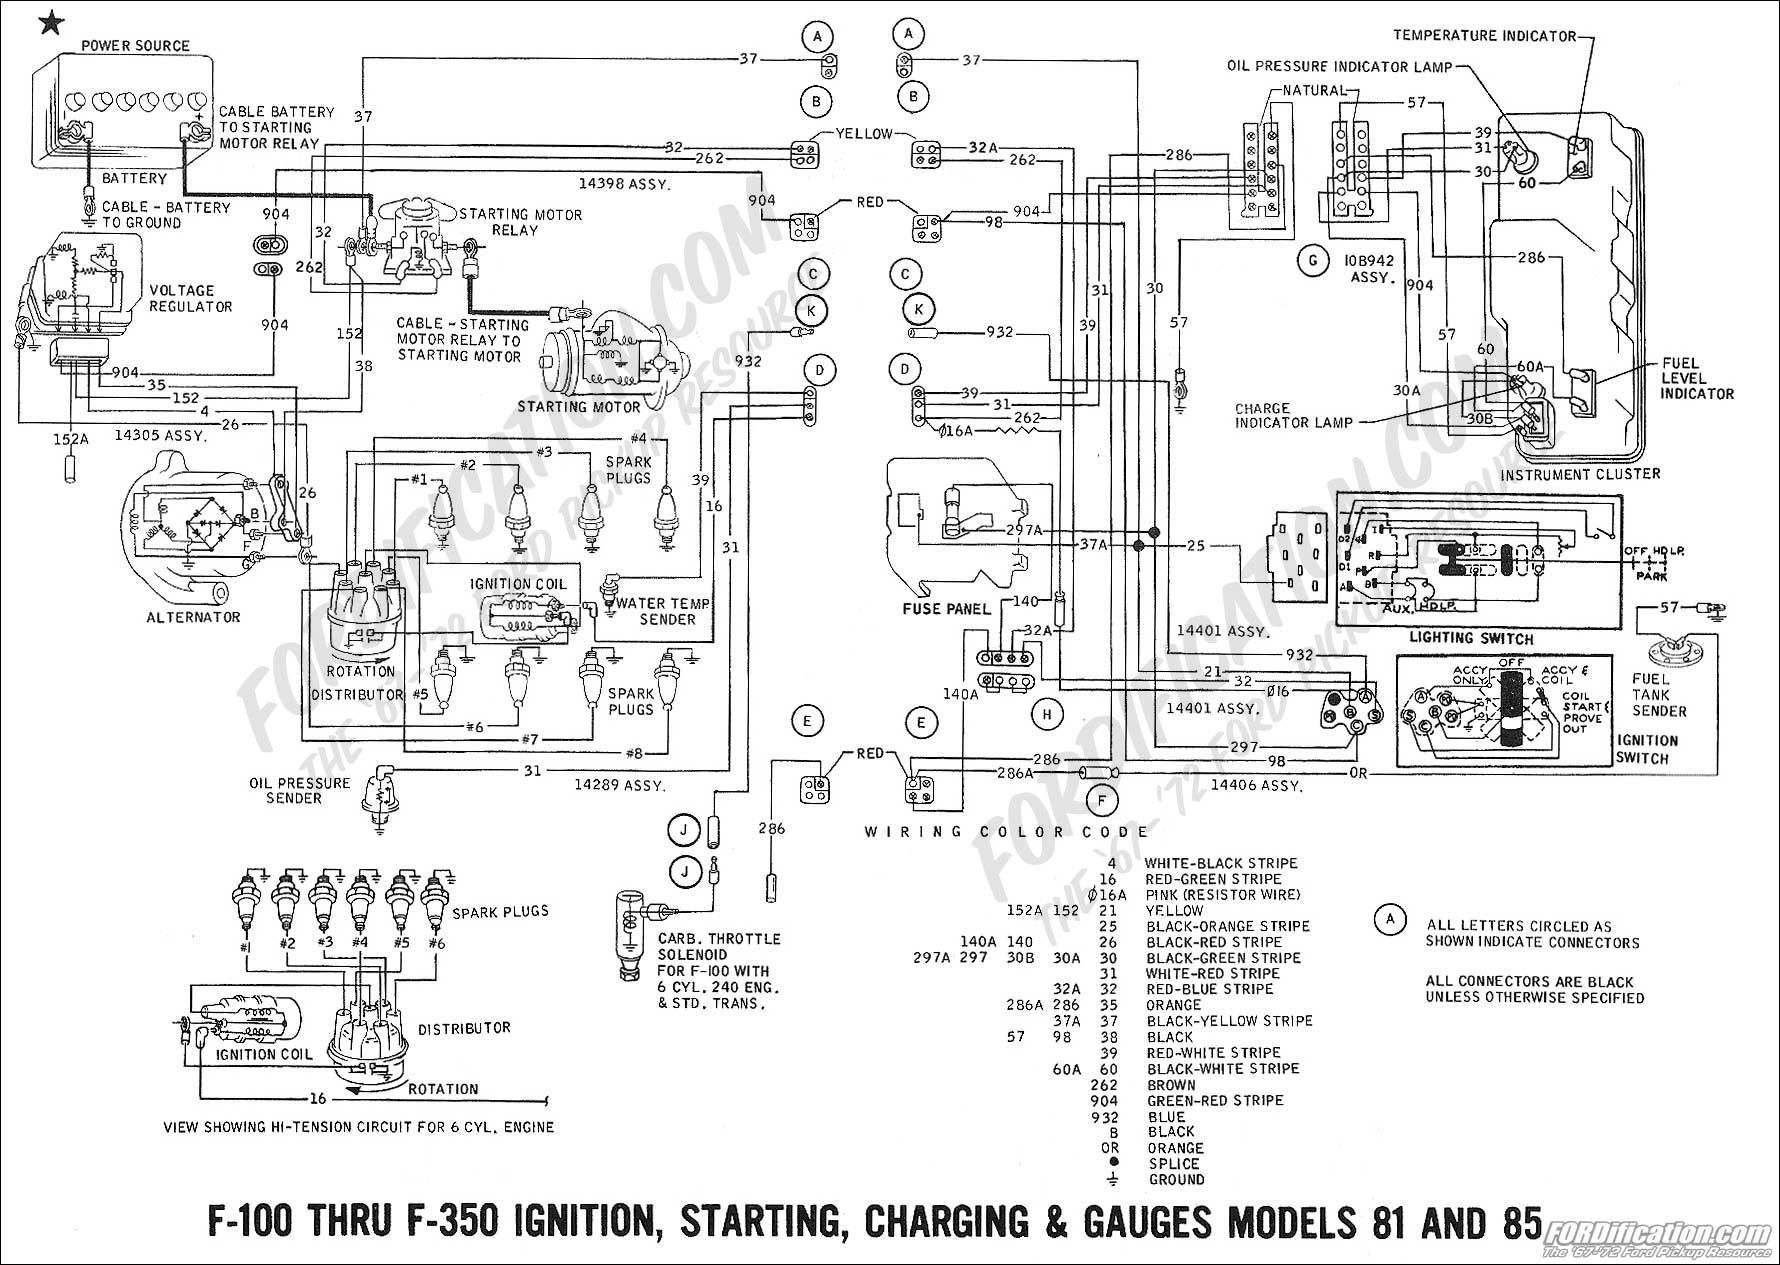 hight resolution of 1967 f 100 wiring harness wiring diagram used 1957 ford f100 wiring harness 1957 ford f100 wiring harness